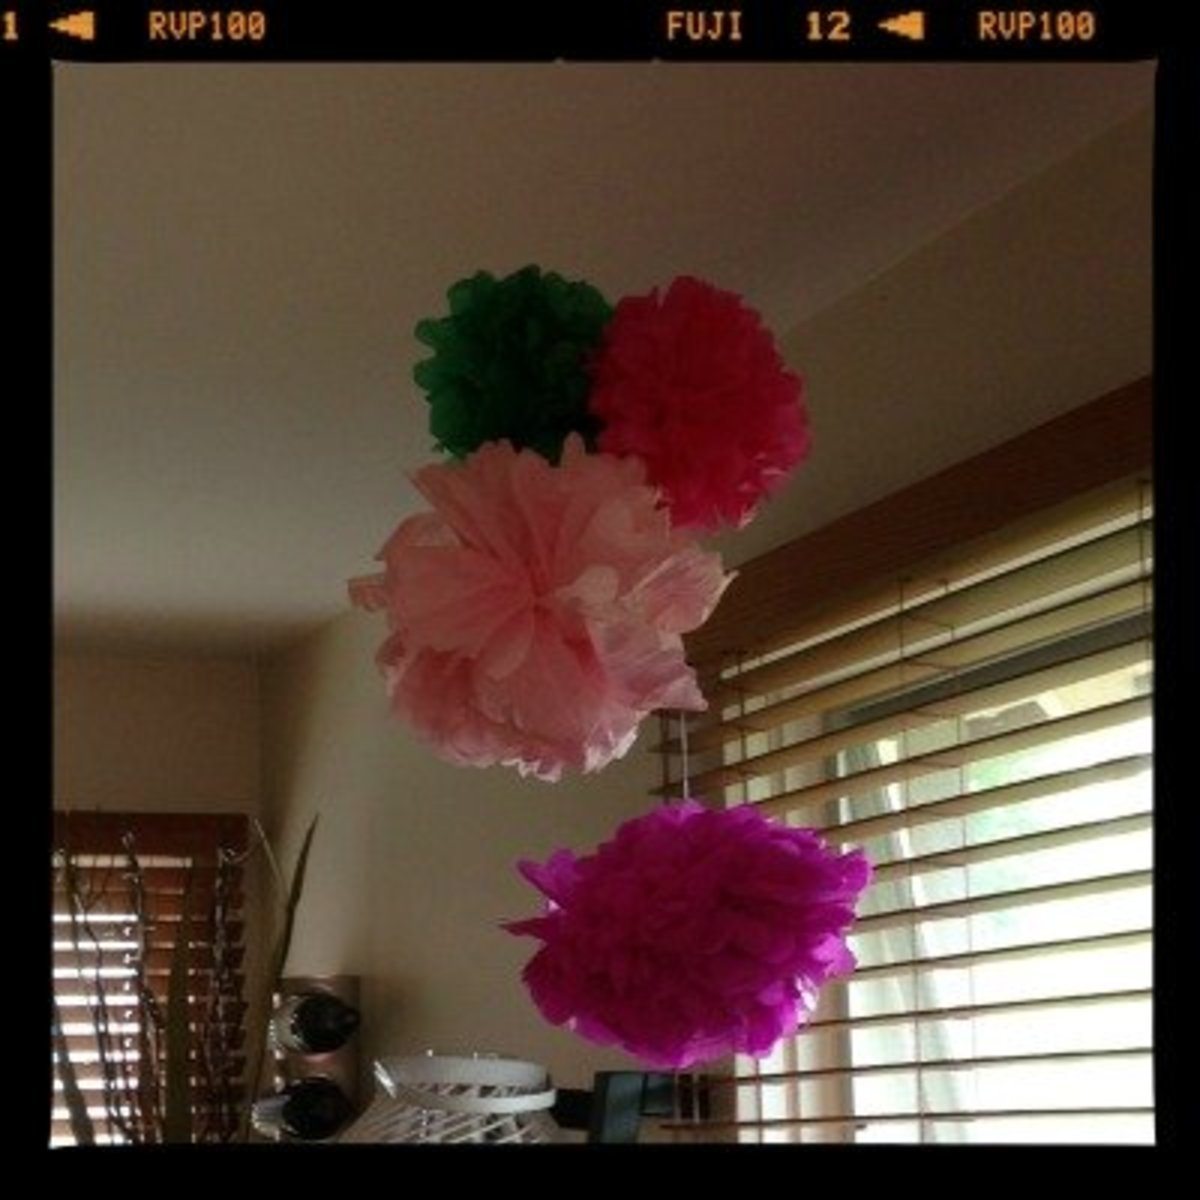 Tissue Paper Flowers are easy to make decorations that are long lasting and reusable!